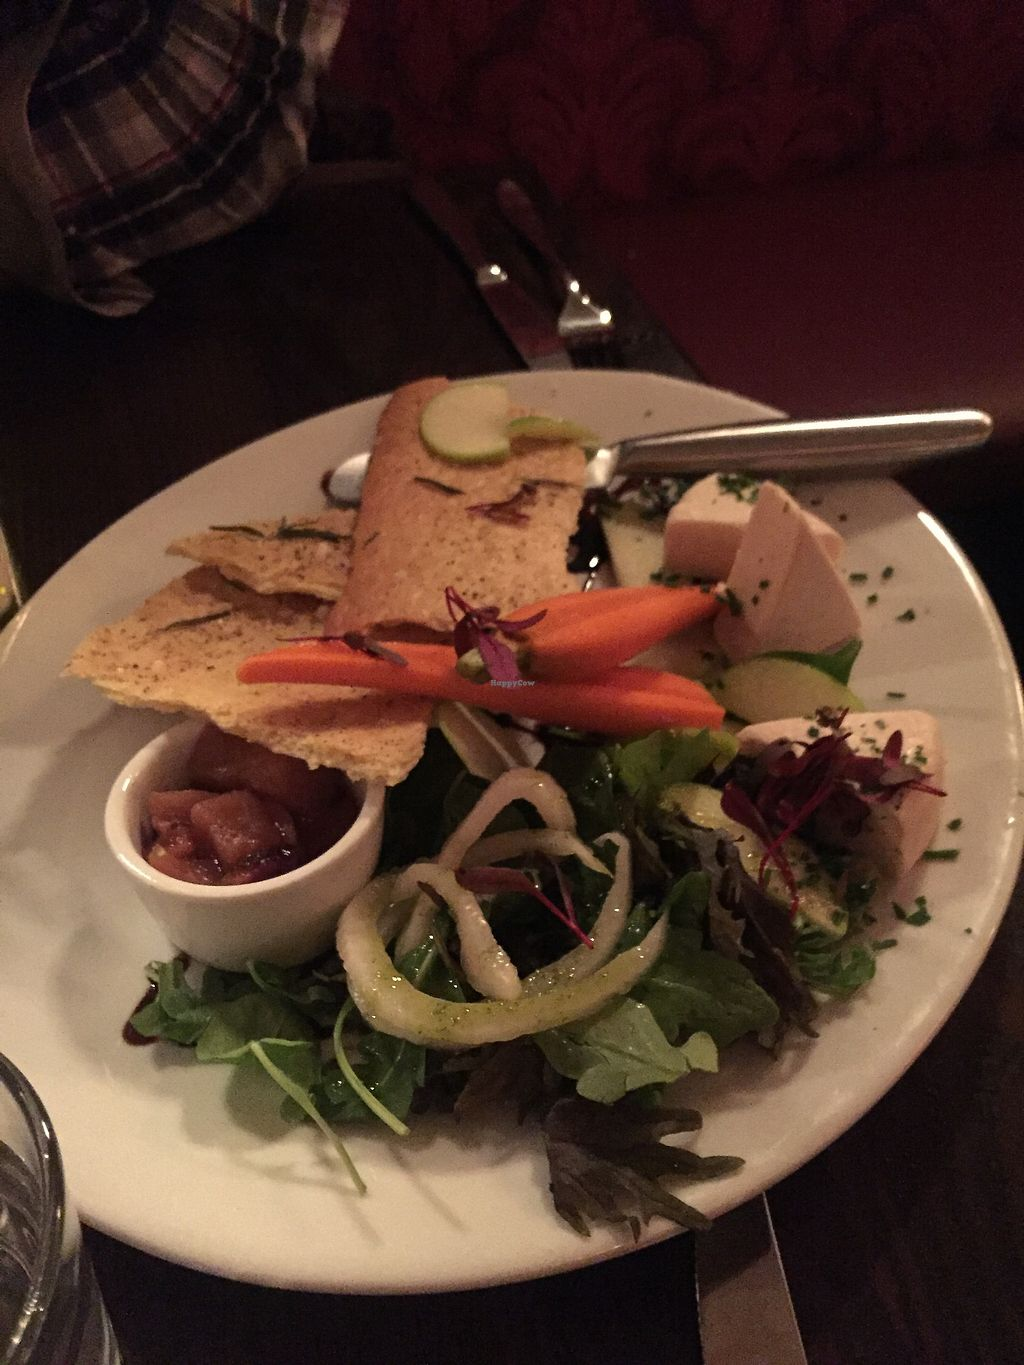 """Photo of Modern Love Brooklyn  by <a href=""""/members/profile/KaitlynnGill"""">KaitlynnGill</a> <br/>Autumn Brie plate <br/> December 2, 2017  - <a href='/contact/abuse/image/79835/331514'>Report</a>"""